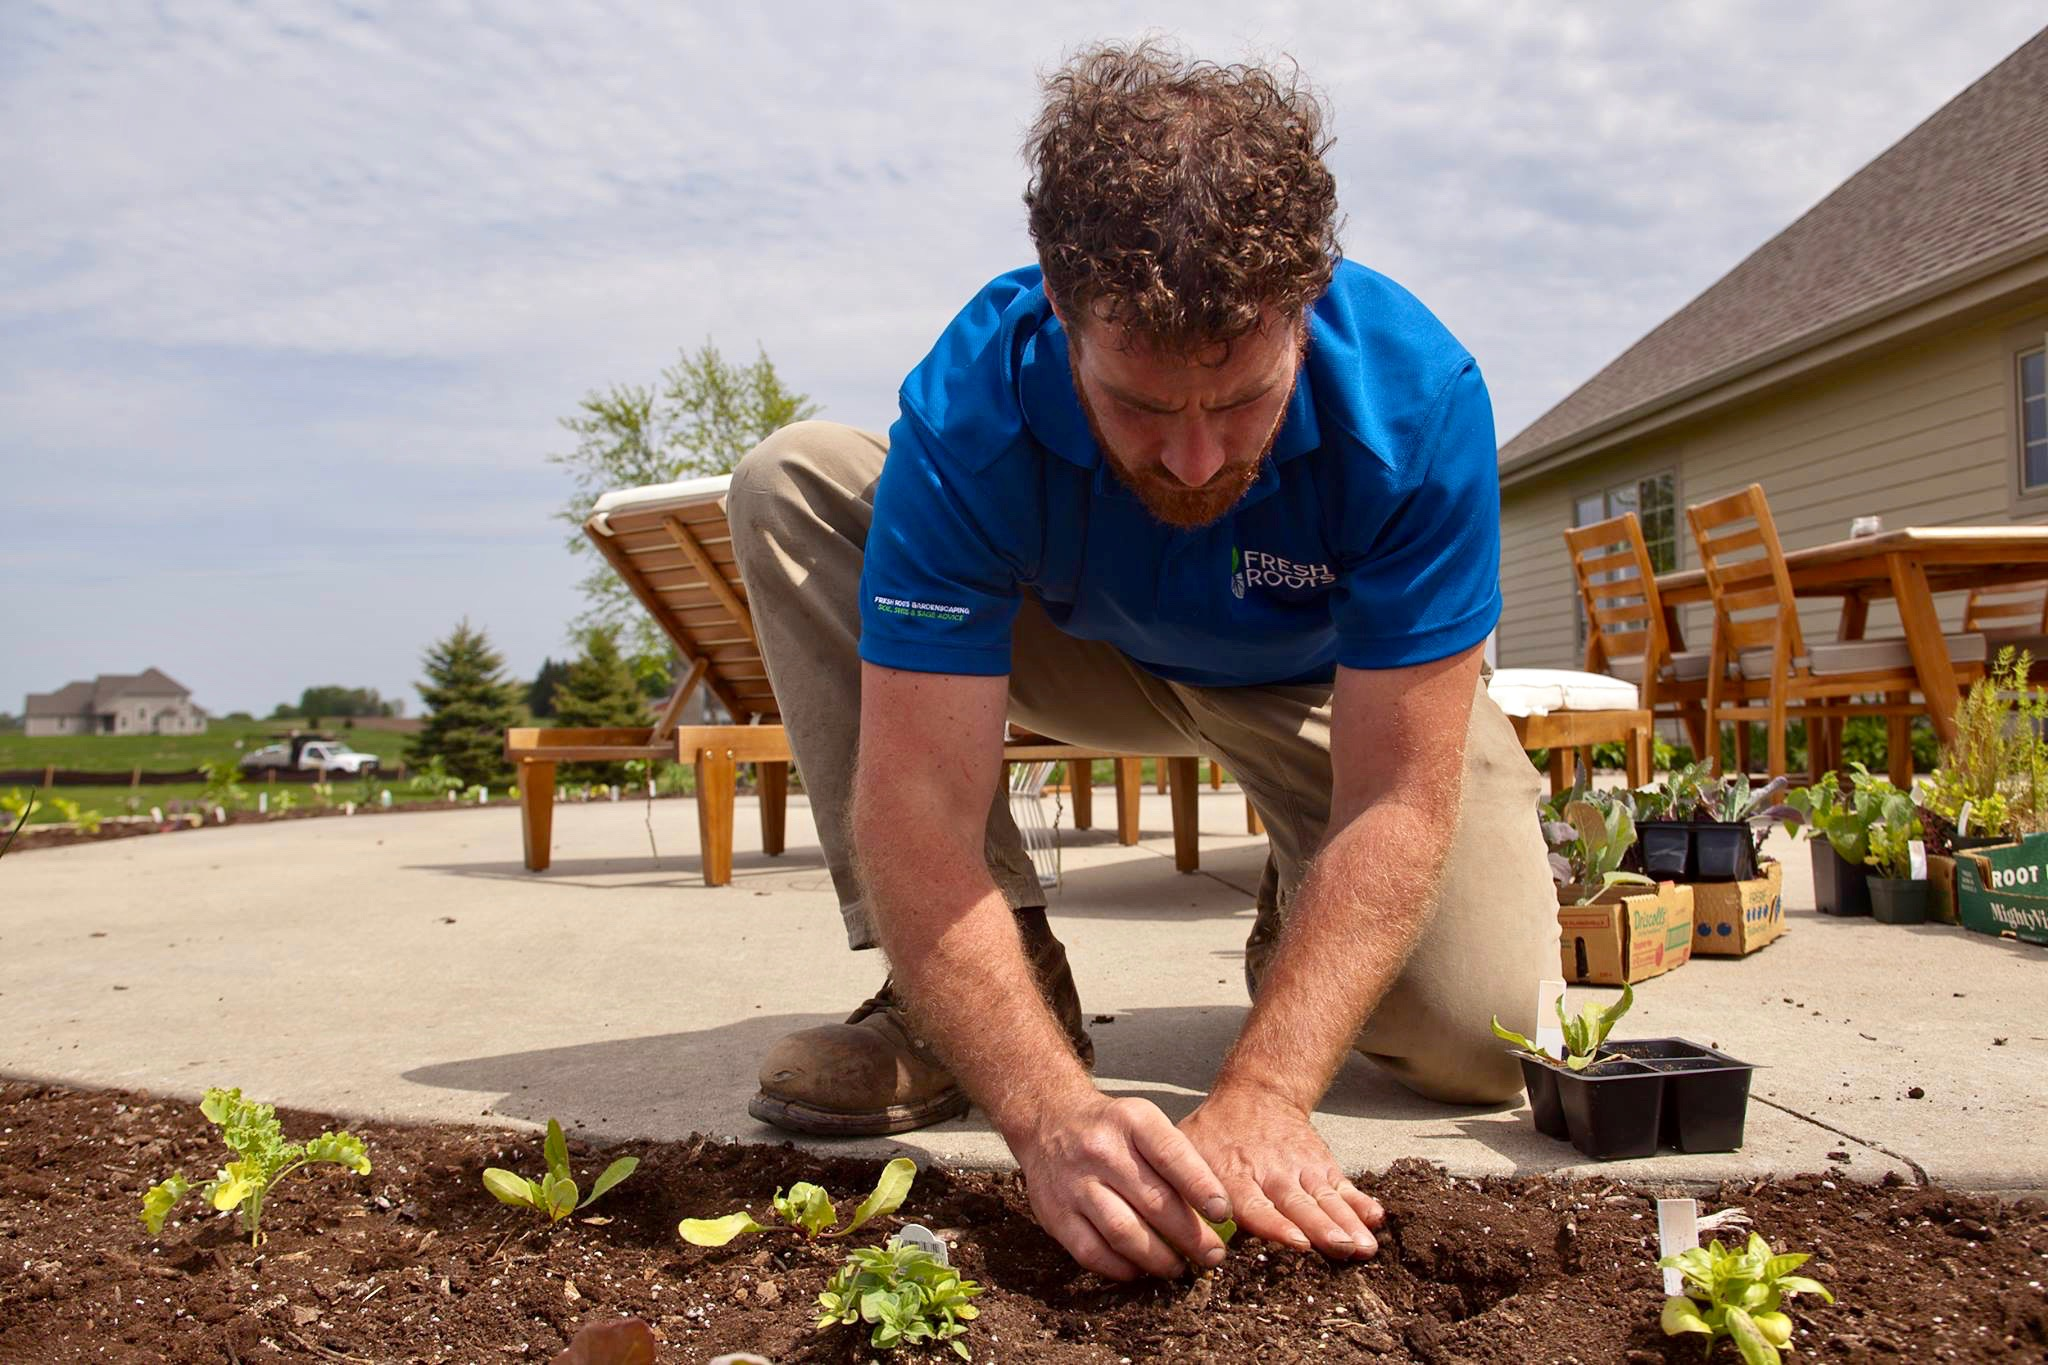 Alec adds compost to his edible landscaping. To learn more about edible landscaping, visit his  website